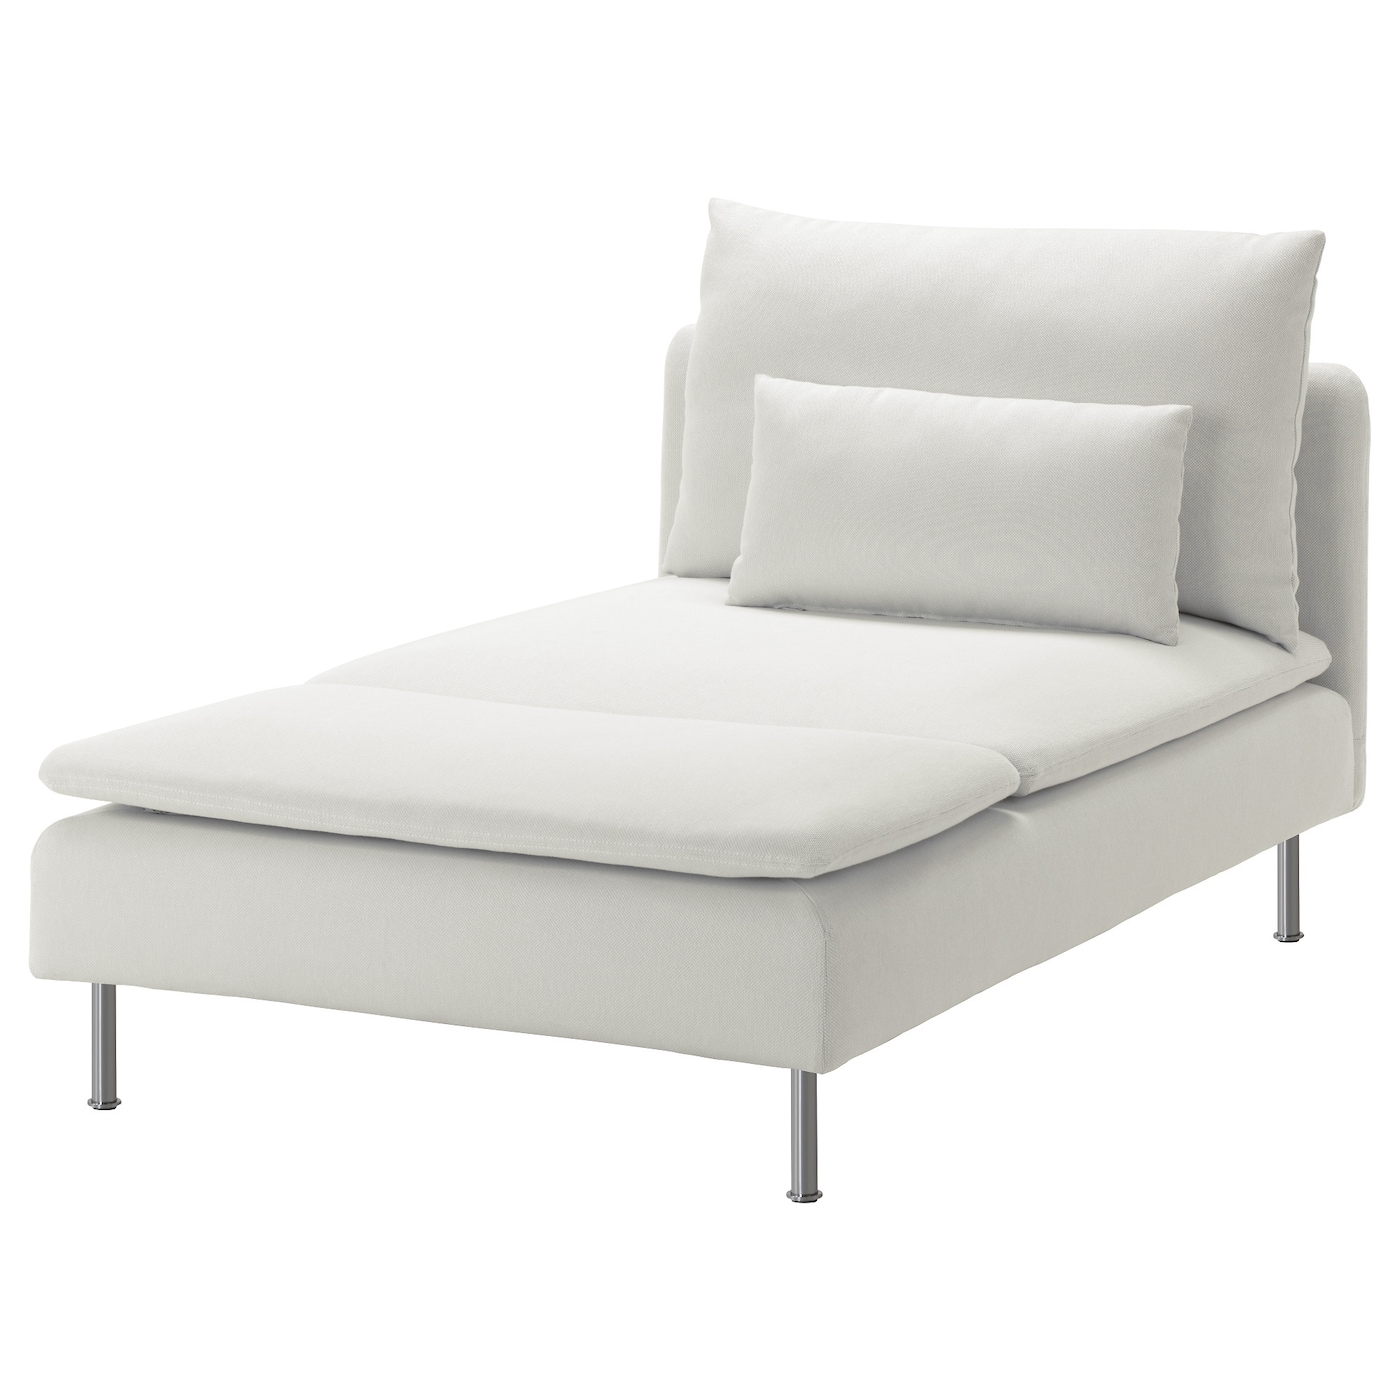 Chaiselongue ikea  SÖDERHAMN Chaise longue Finnsta white - IKEA